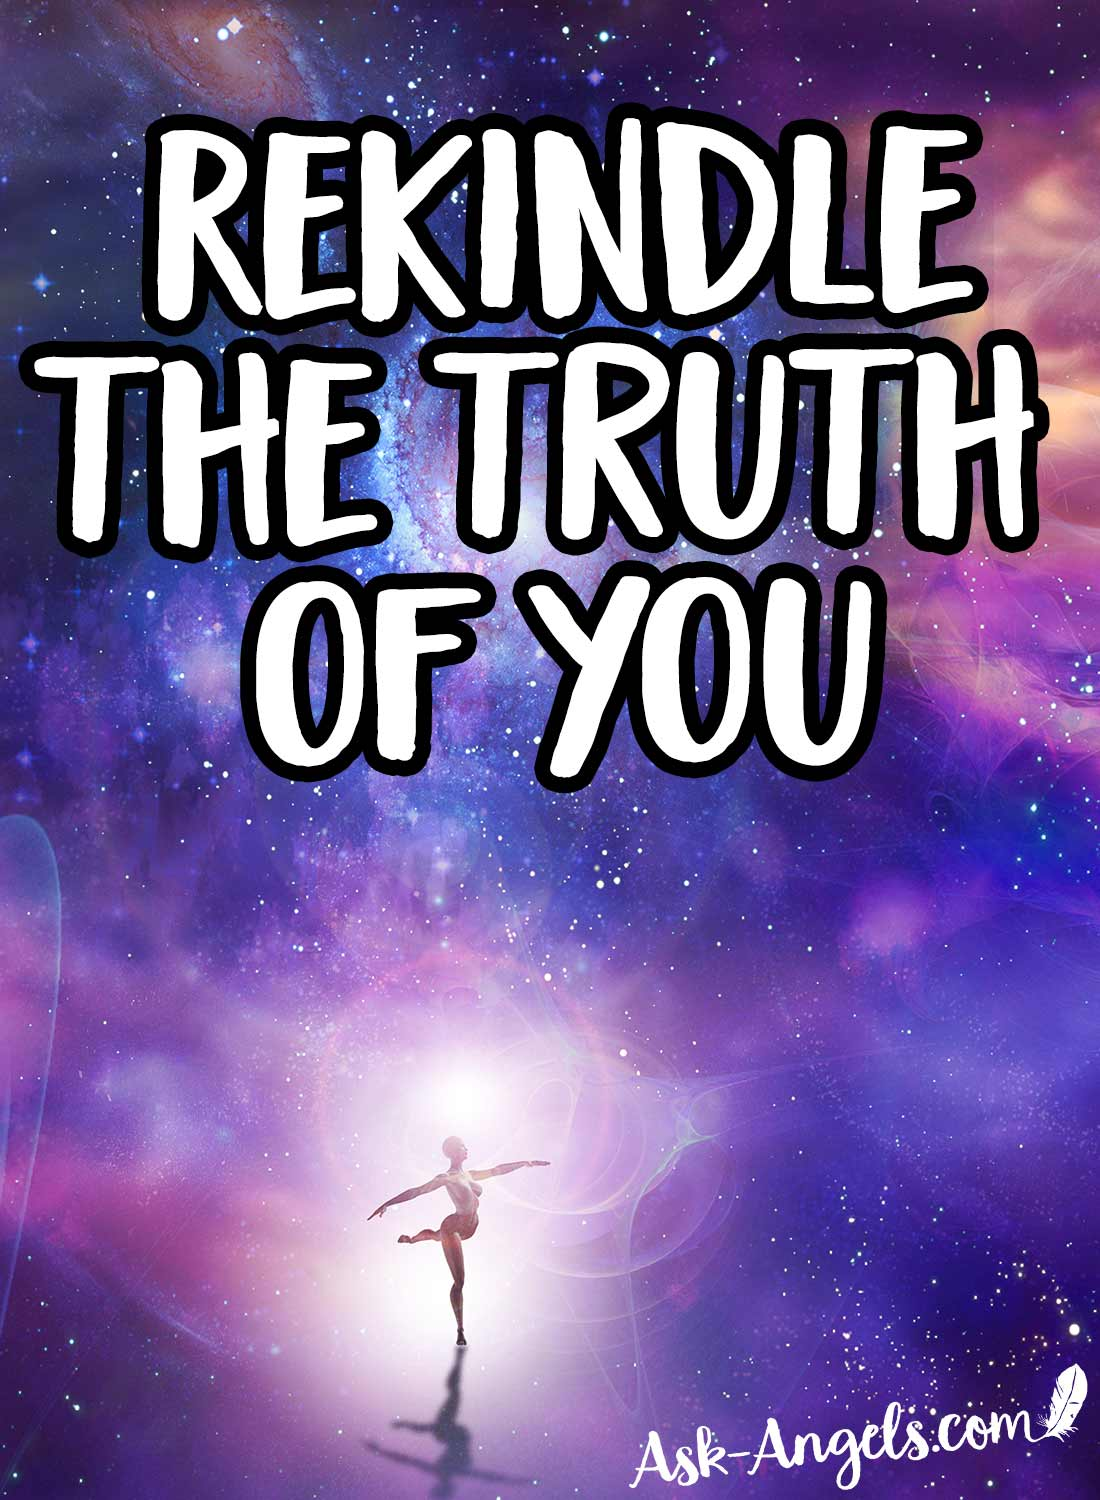 Rekindle the Truth of You